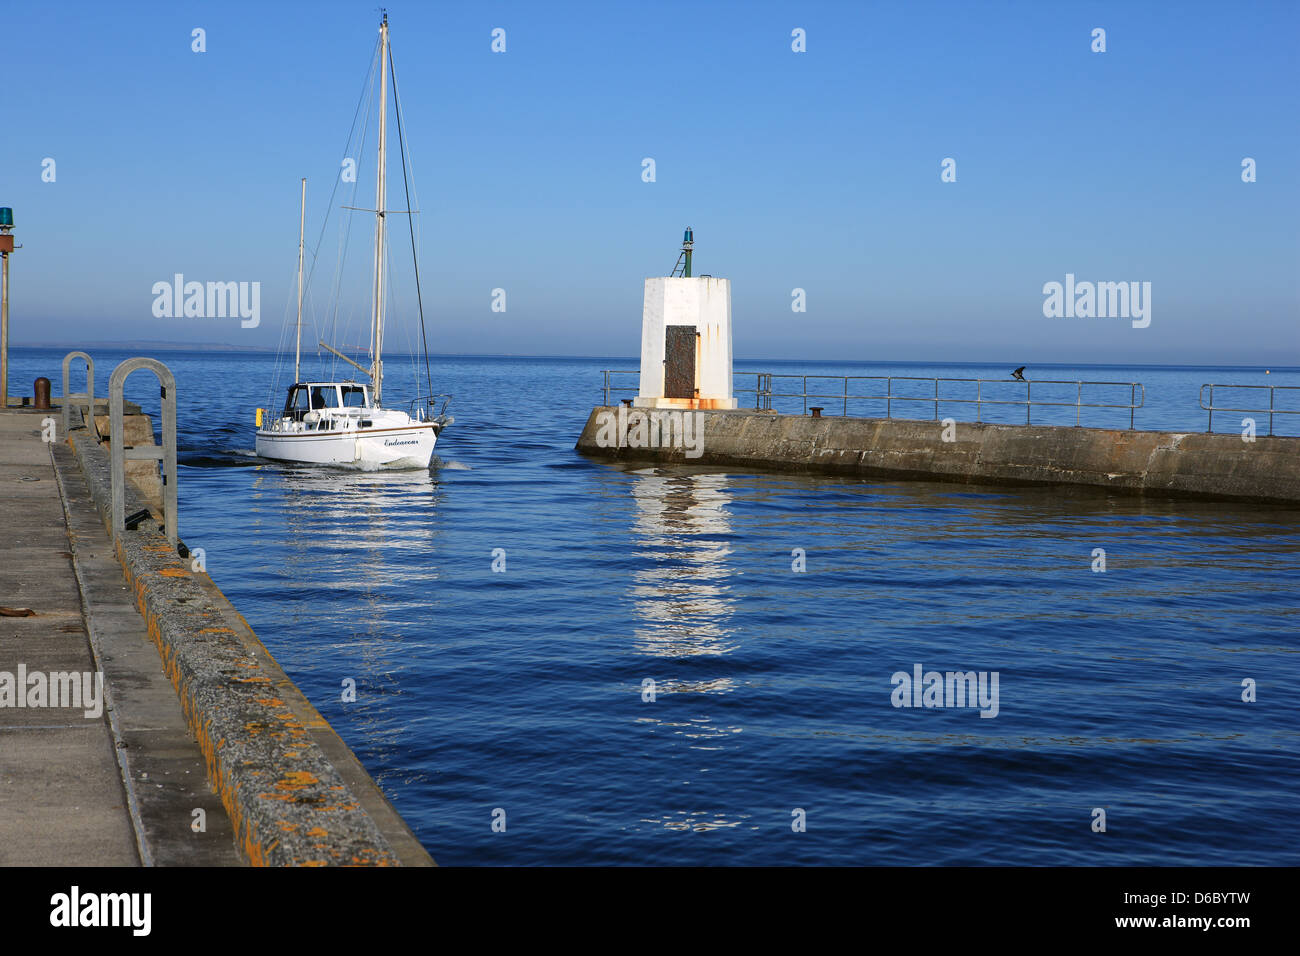 Yacht entering Nairn Harbour in the Highlands of Scotland - Stock Image